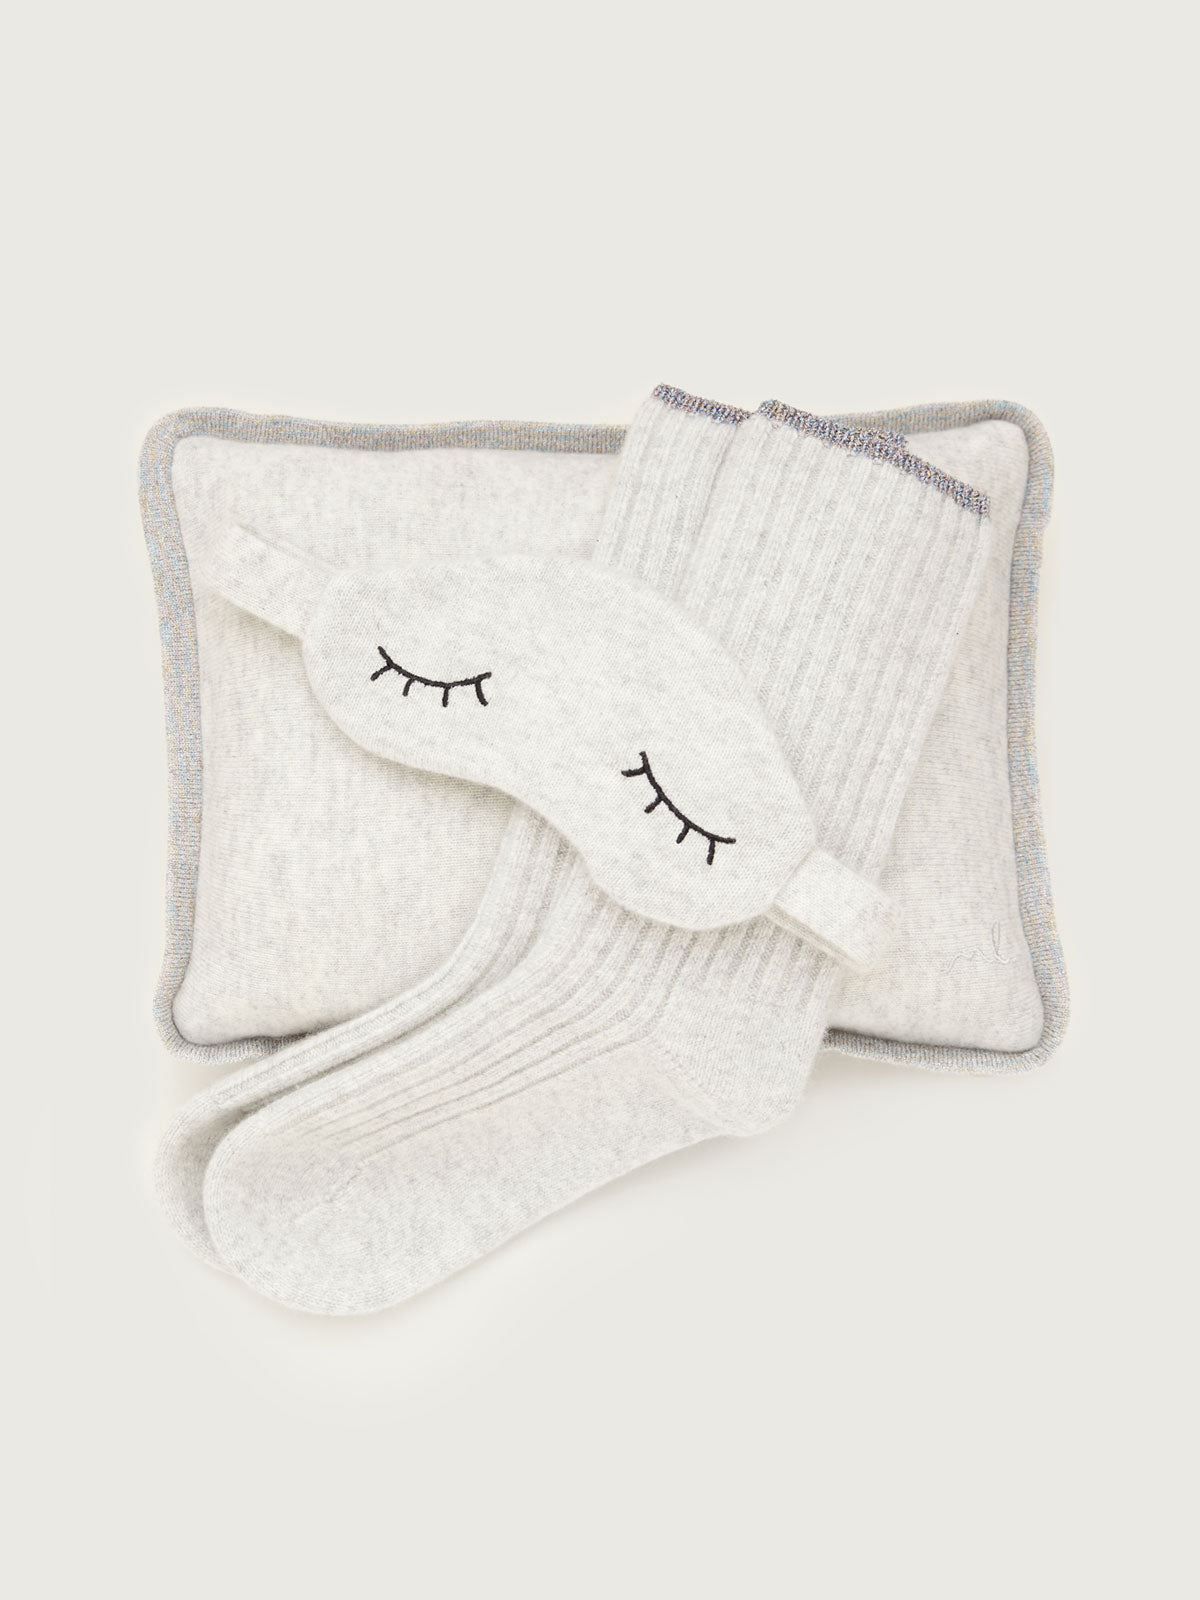 Sleepy Cashmere Gift Set in Pale Gray By Morgan Lane